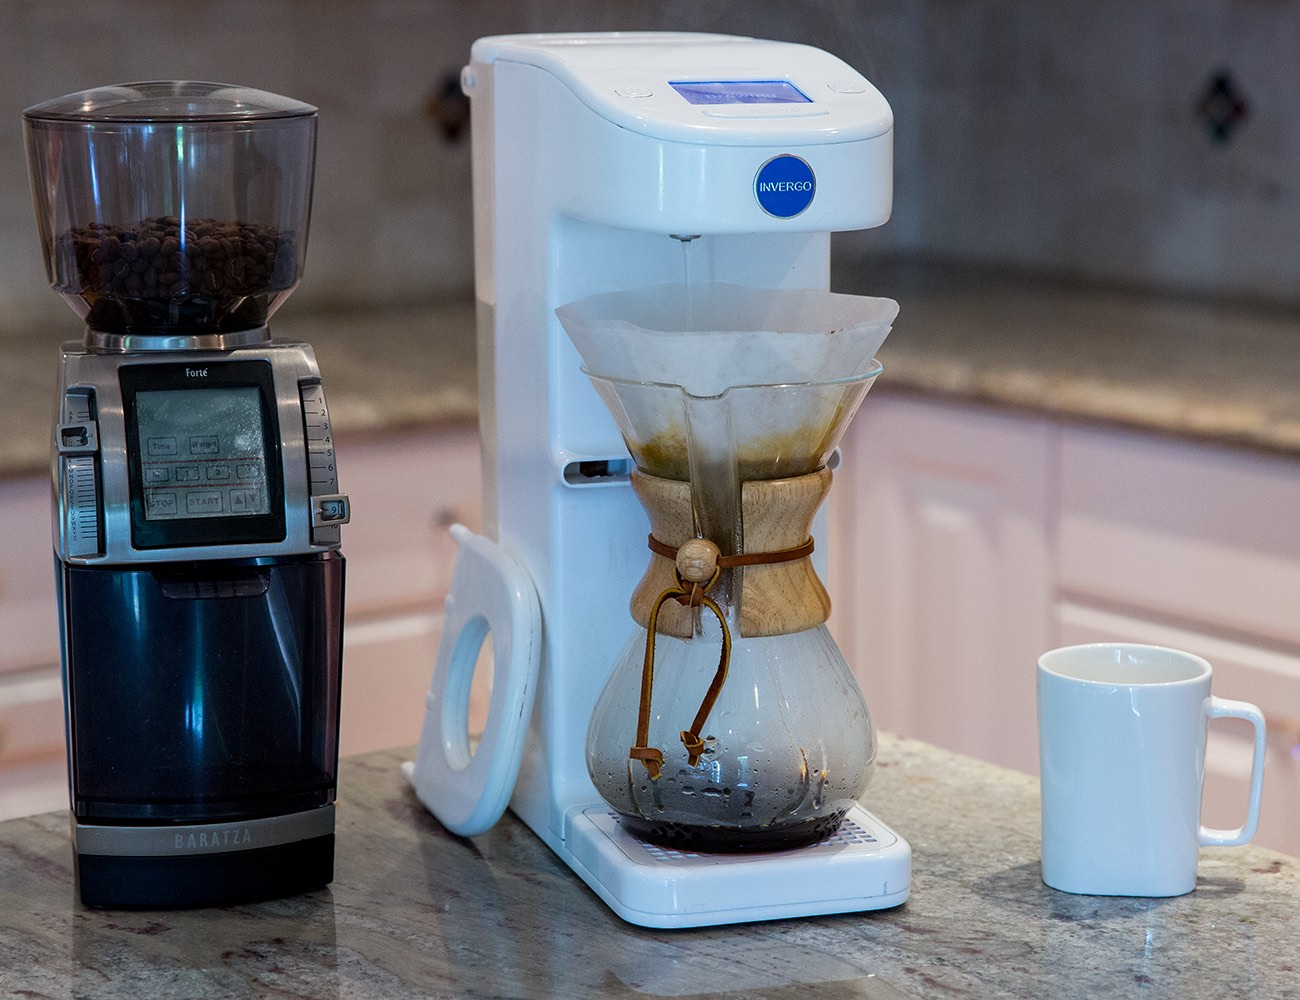 Invergo – The First Automated Pour Over Coffee System